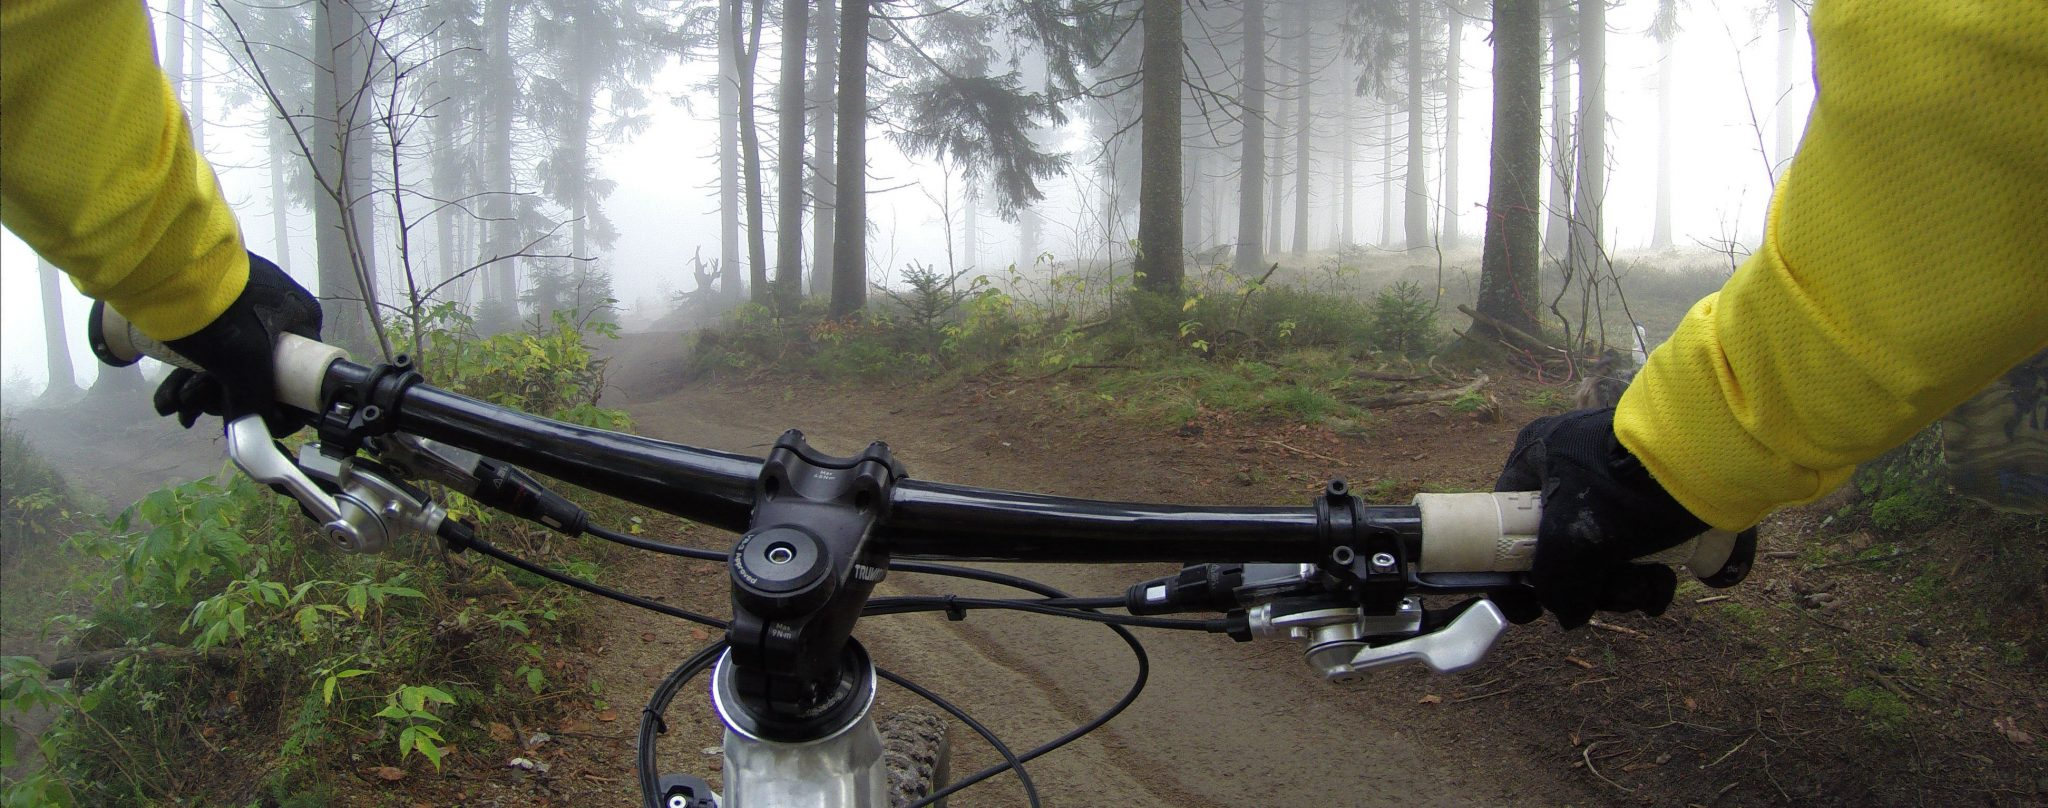 rothrock massage - mountain bike mist